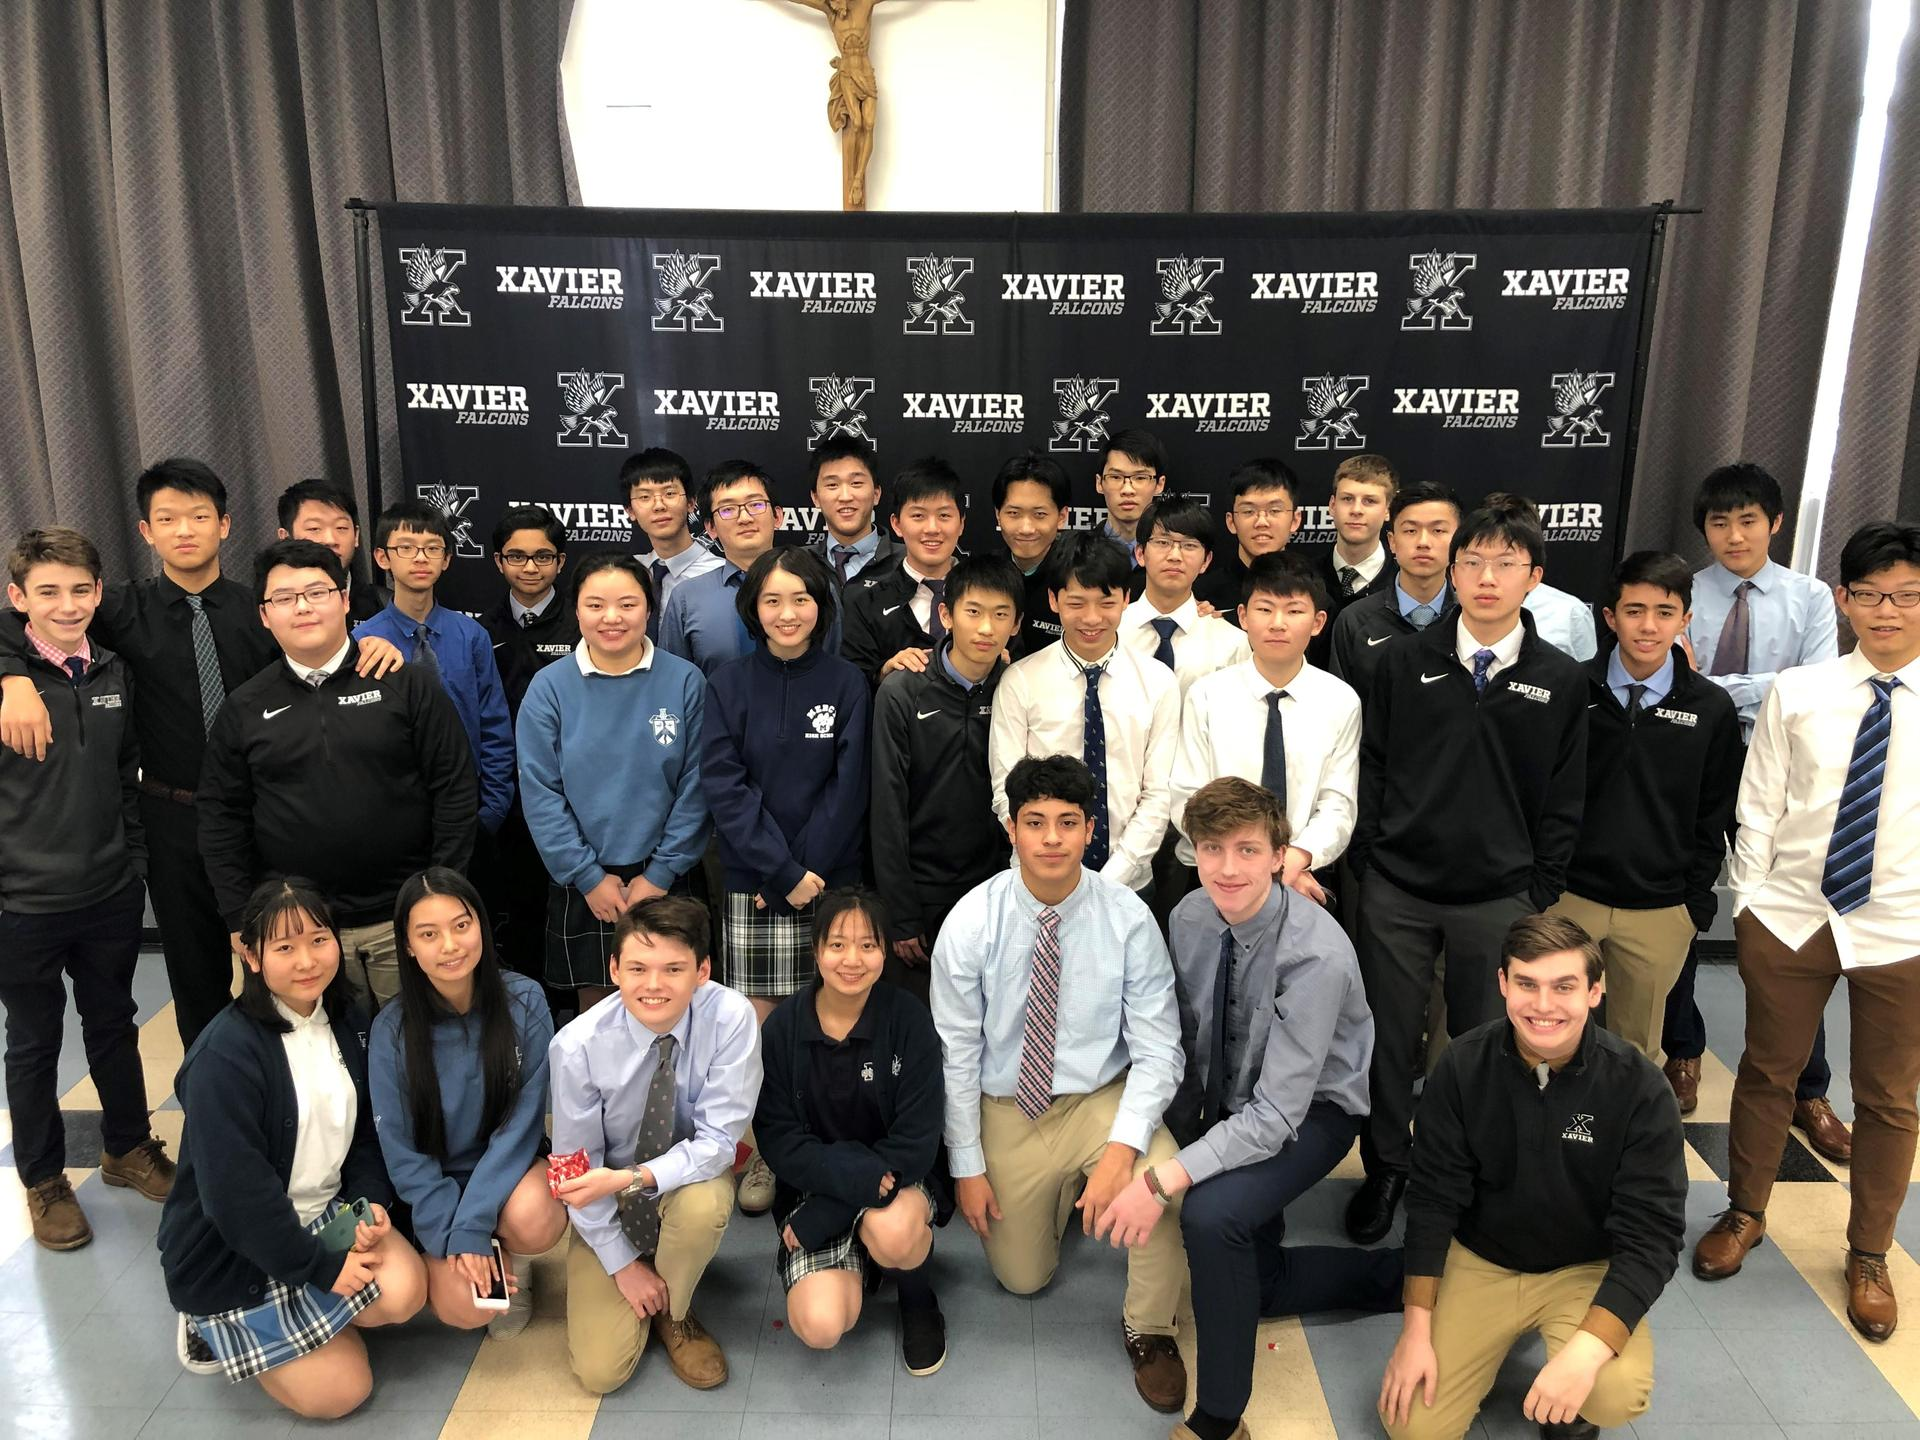 At the start of the 2019-2020 school year, Xavier welcomed 22 international students to Xavier High School. It was our largest group of international students. We can't wait to welcome the next group of international students to Xavier this upcoming school year.